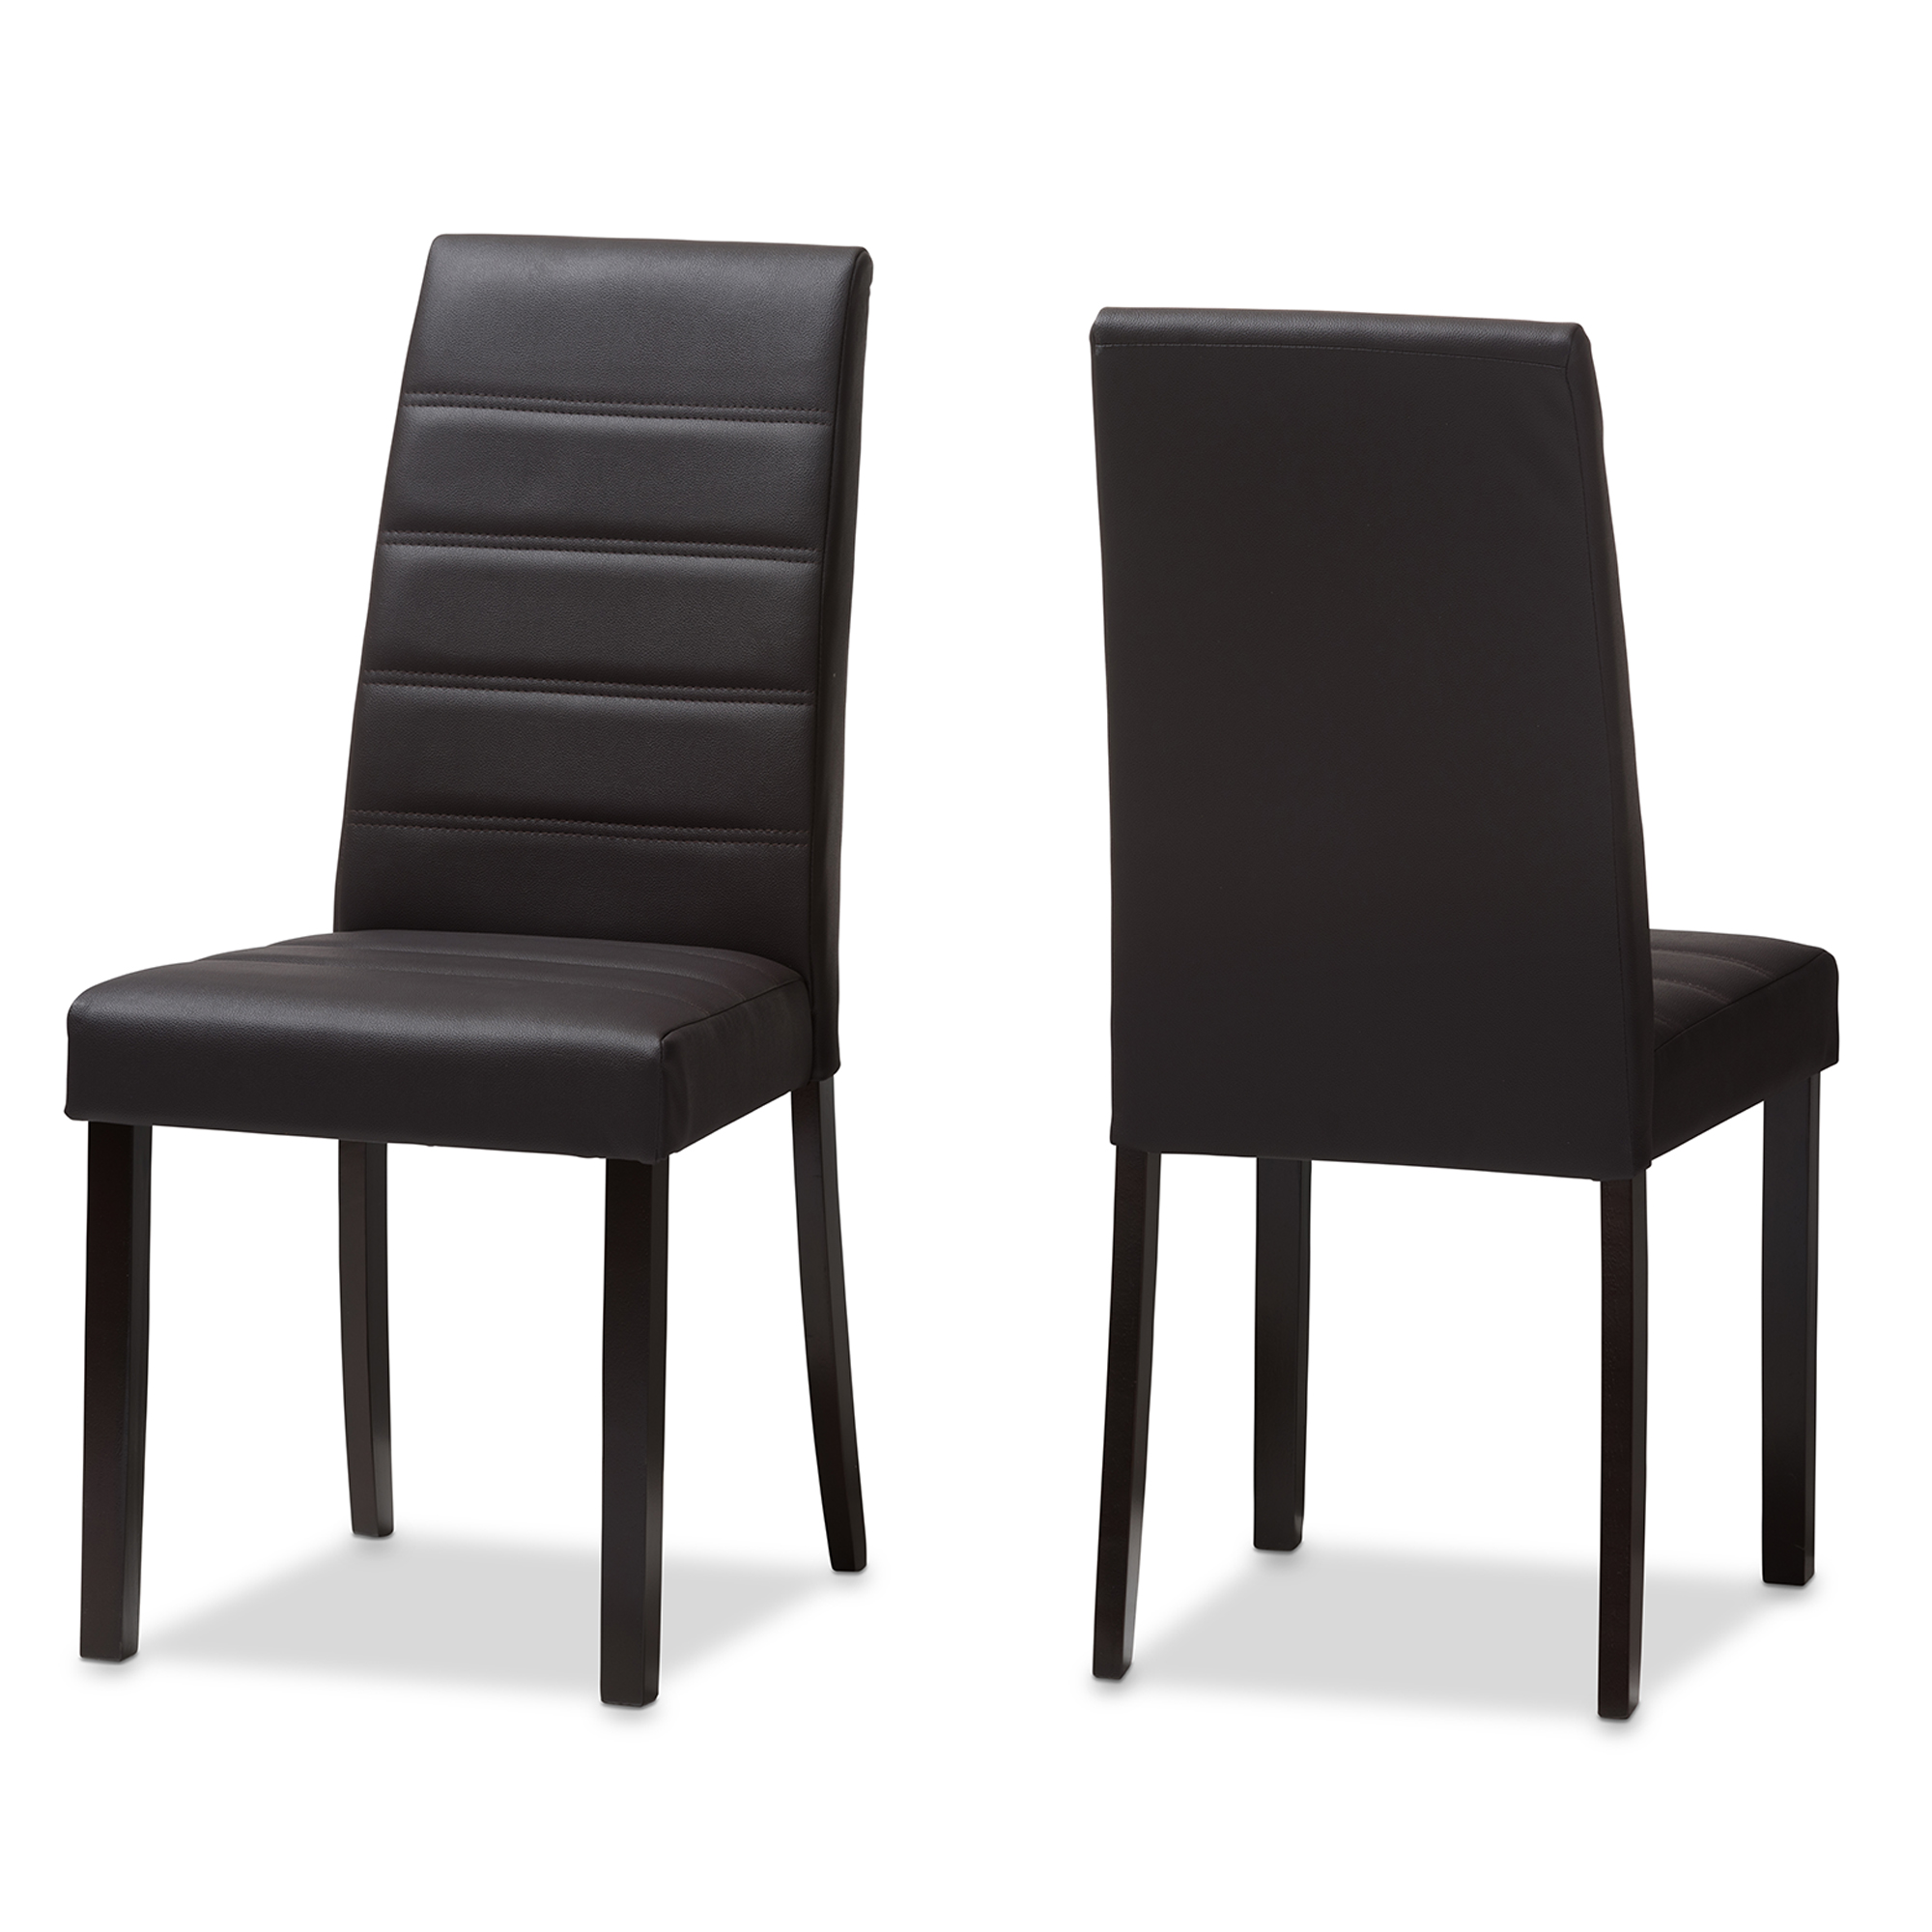 Dining Chairs Set Brown Faux Leather Modern Style Walnut: Baxton Studio Lorelle Modern And Contemporary Brown Faux